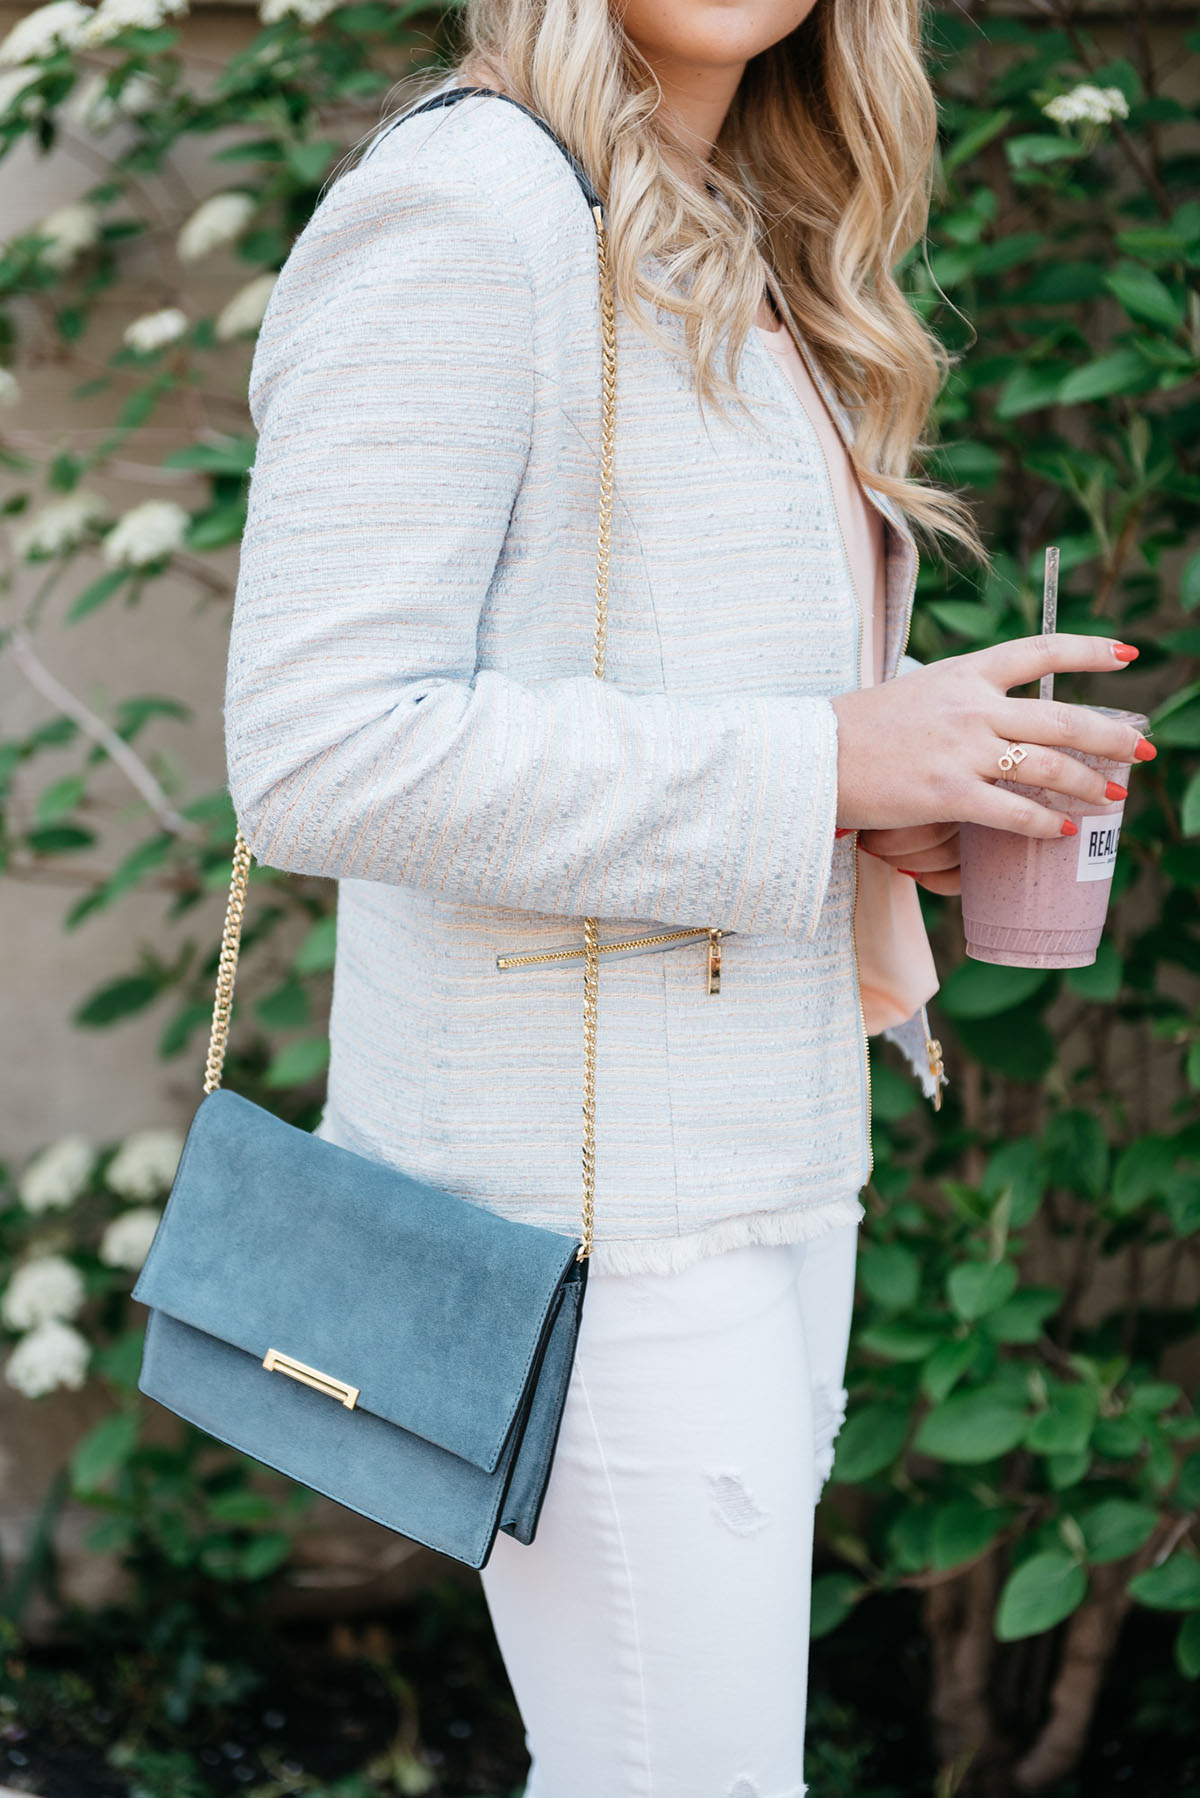 Bows & Sequins wearing a metallic tweed jacket and a blue suede Ivanka Trump cross-body bag with a gold chain.